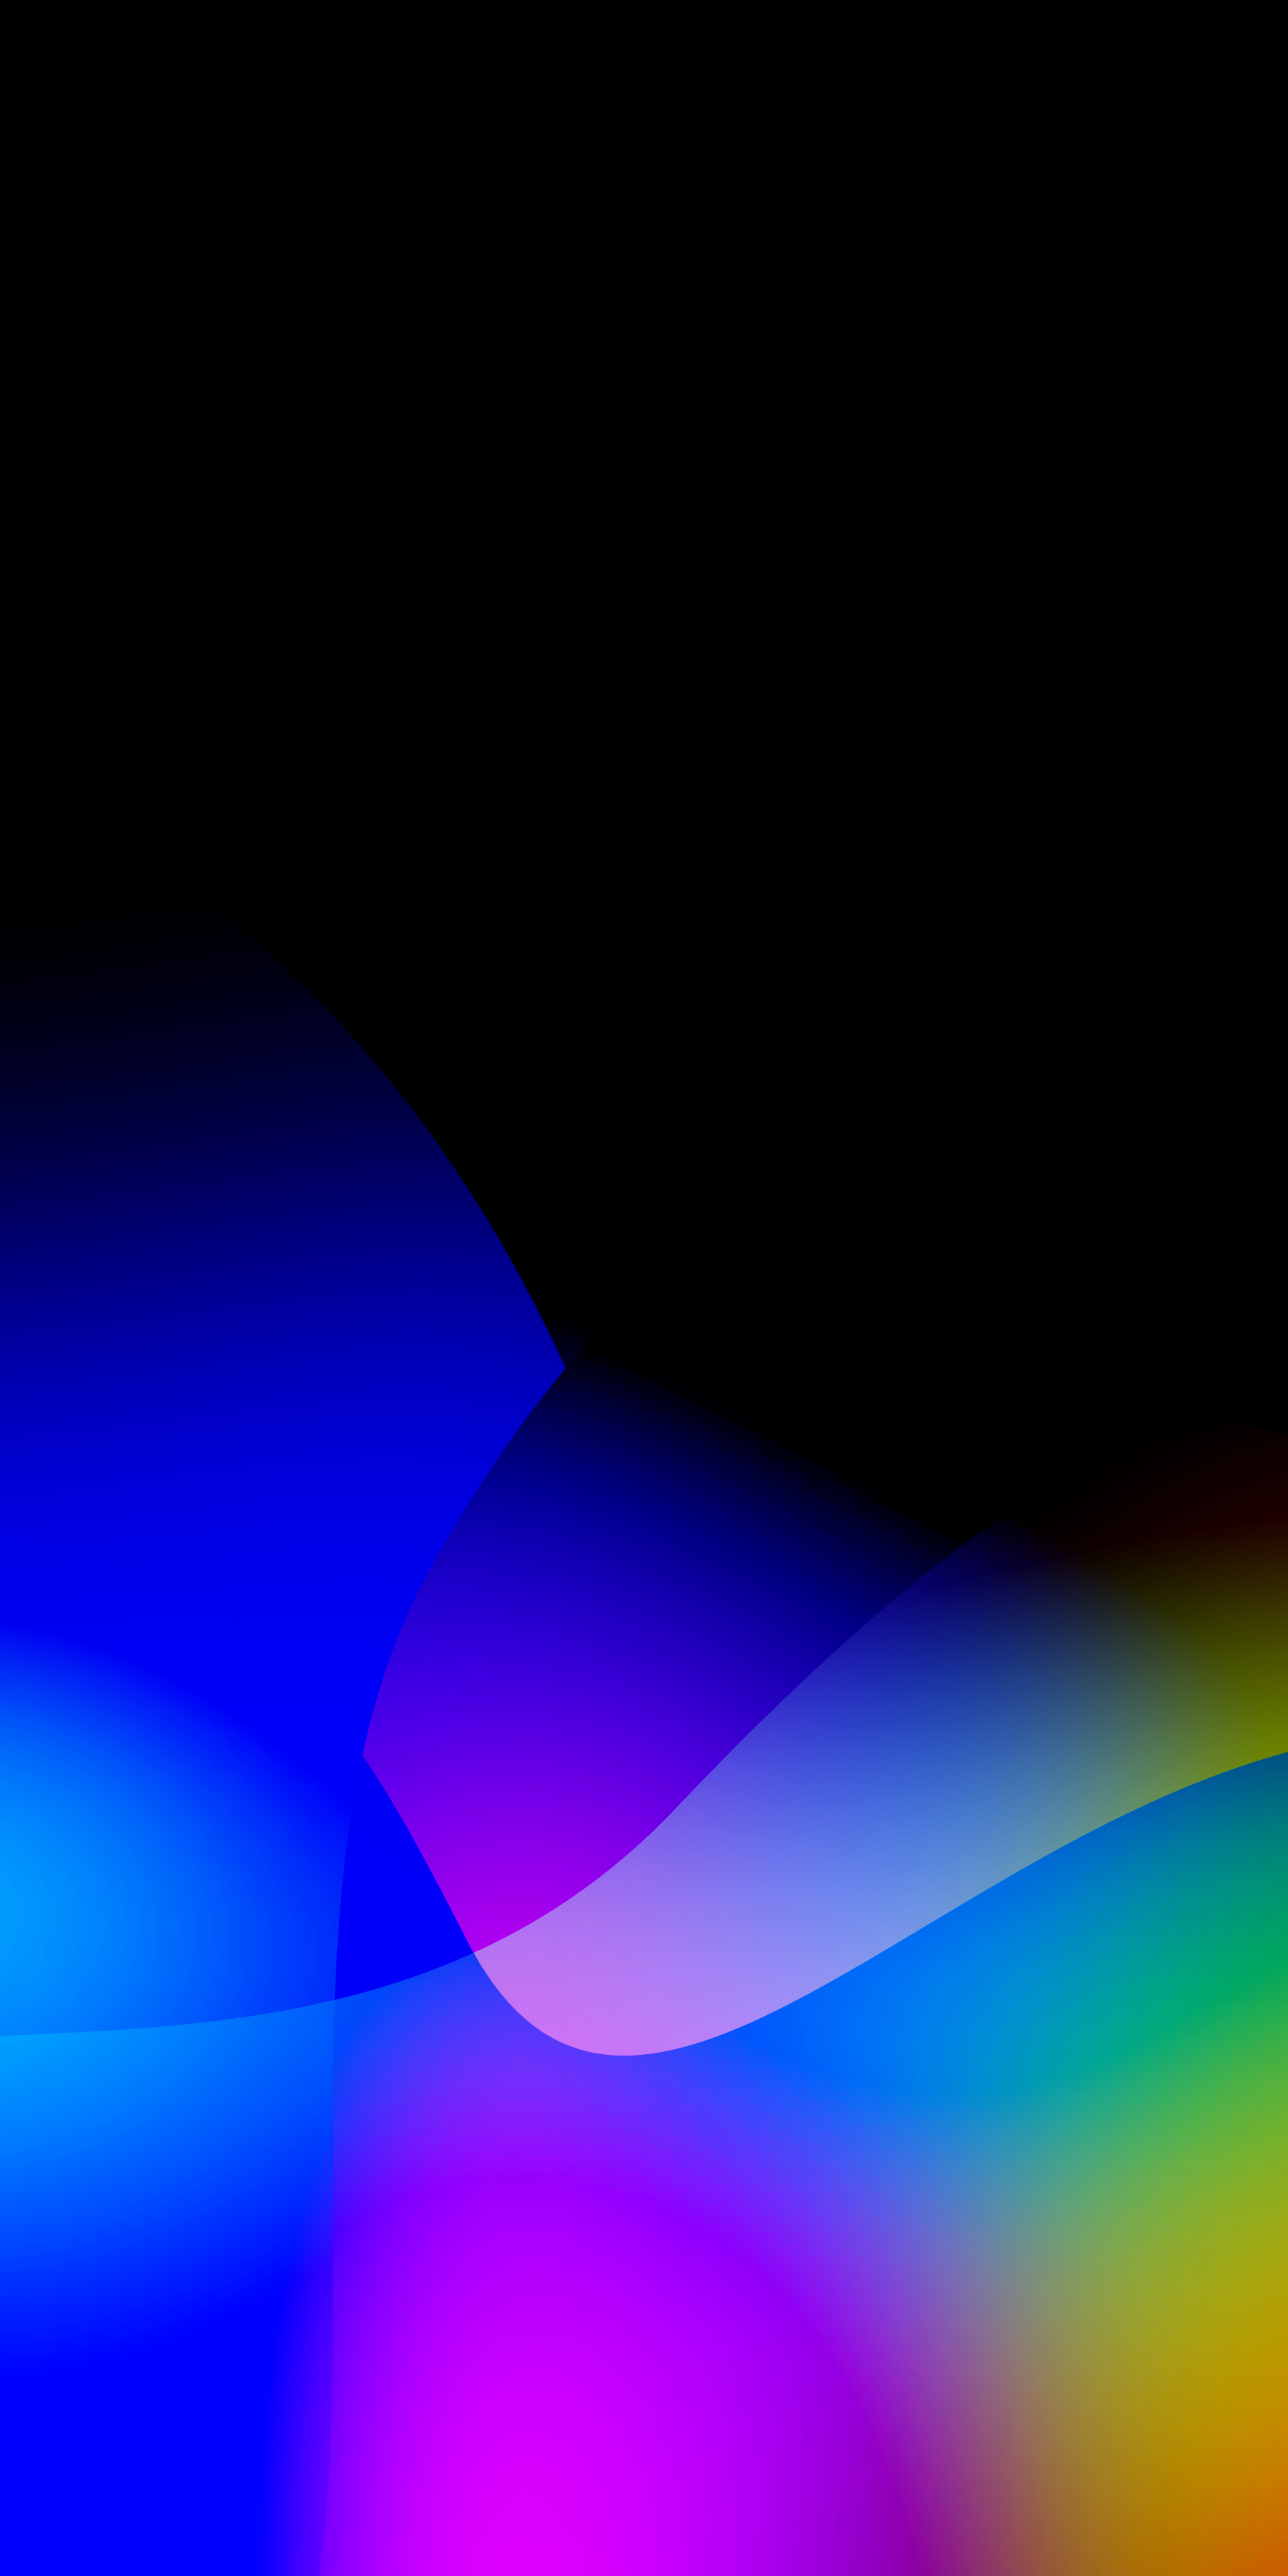 Mice Gradient By Ongliong11 On Twitter Abstract Iphone Wallpaper Iphone Homescreen Wallpaper Art Wallpaper Iphone